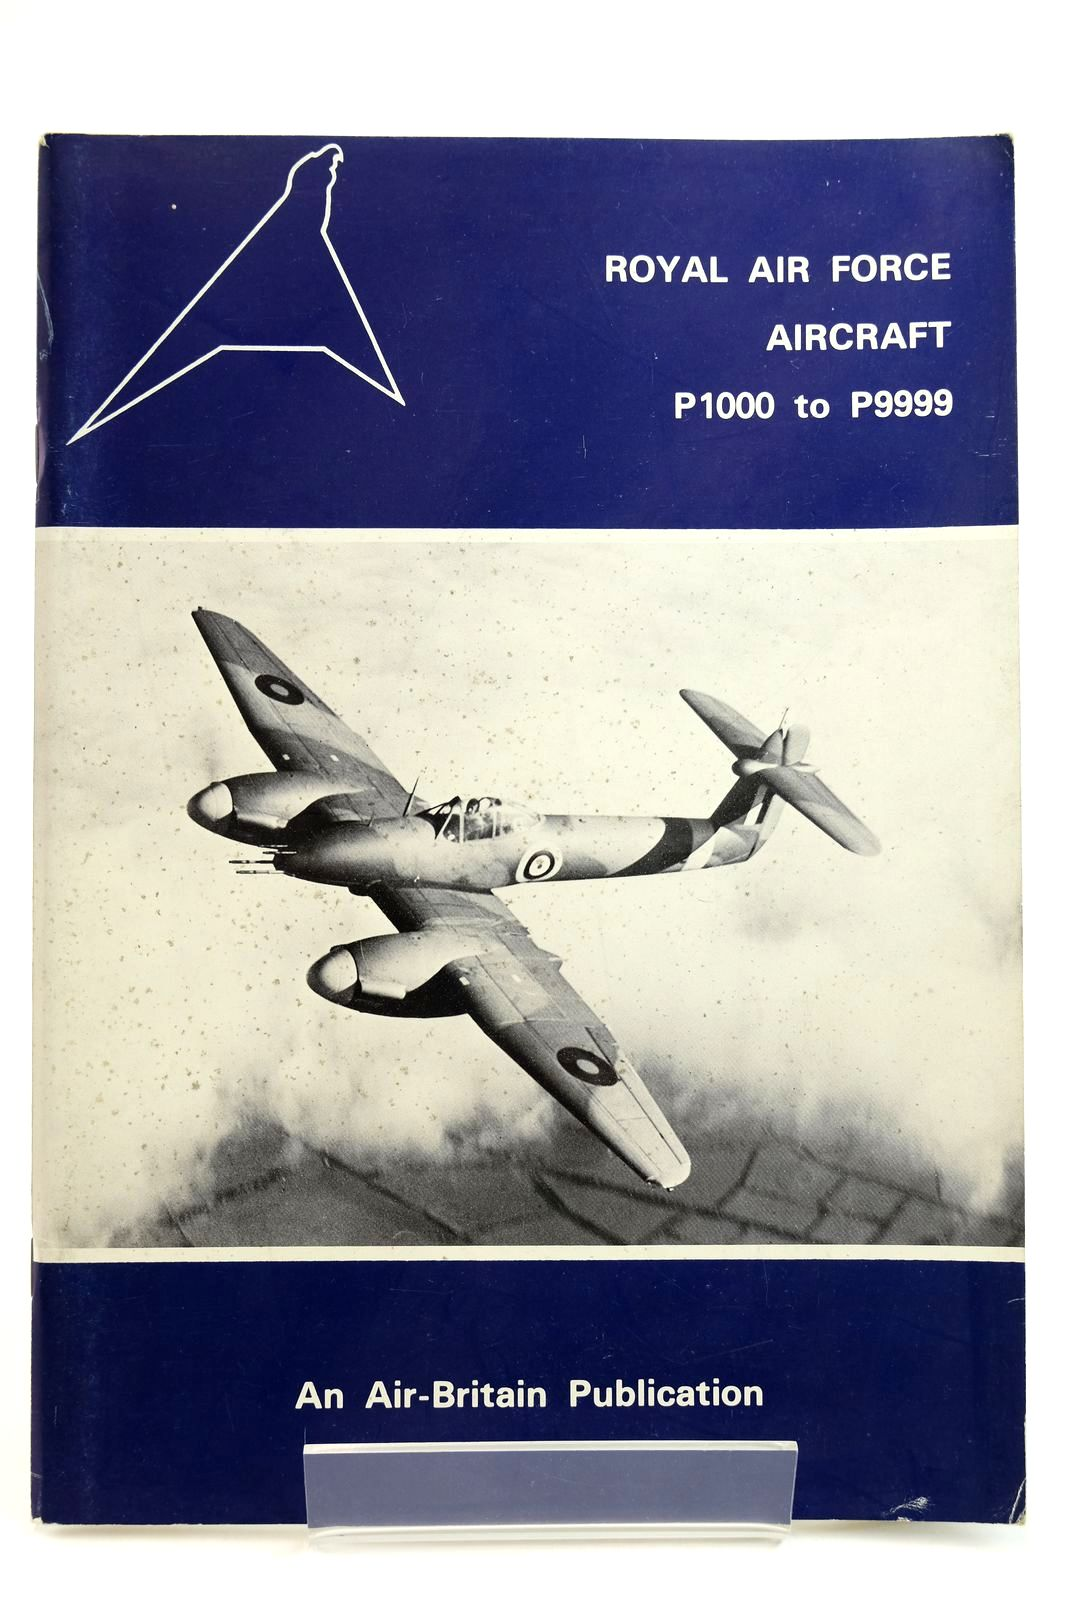 Photo of ROYAL AIR FORCE AIRCRAFT P1000 TO P9999 written by Halley, James J. published by Air-Britain (Historians) Ltd. (STOCK CODE: 2132216)  for sale by Stella & Rose's Books